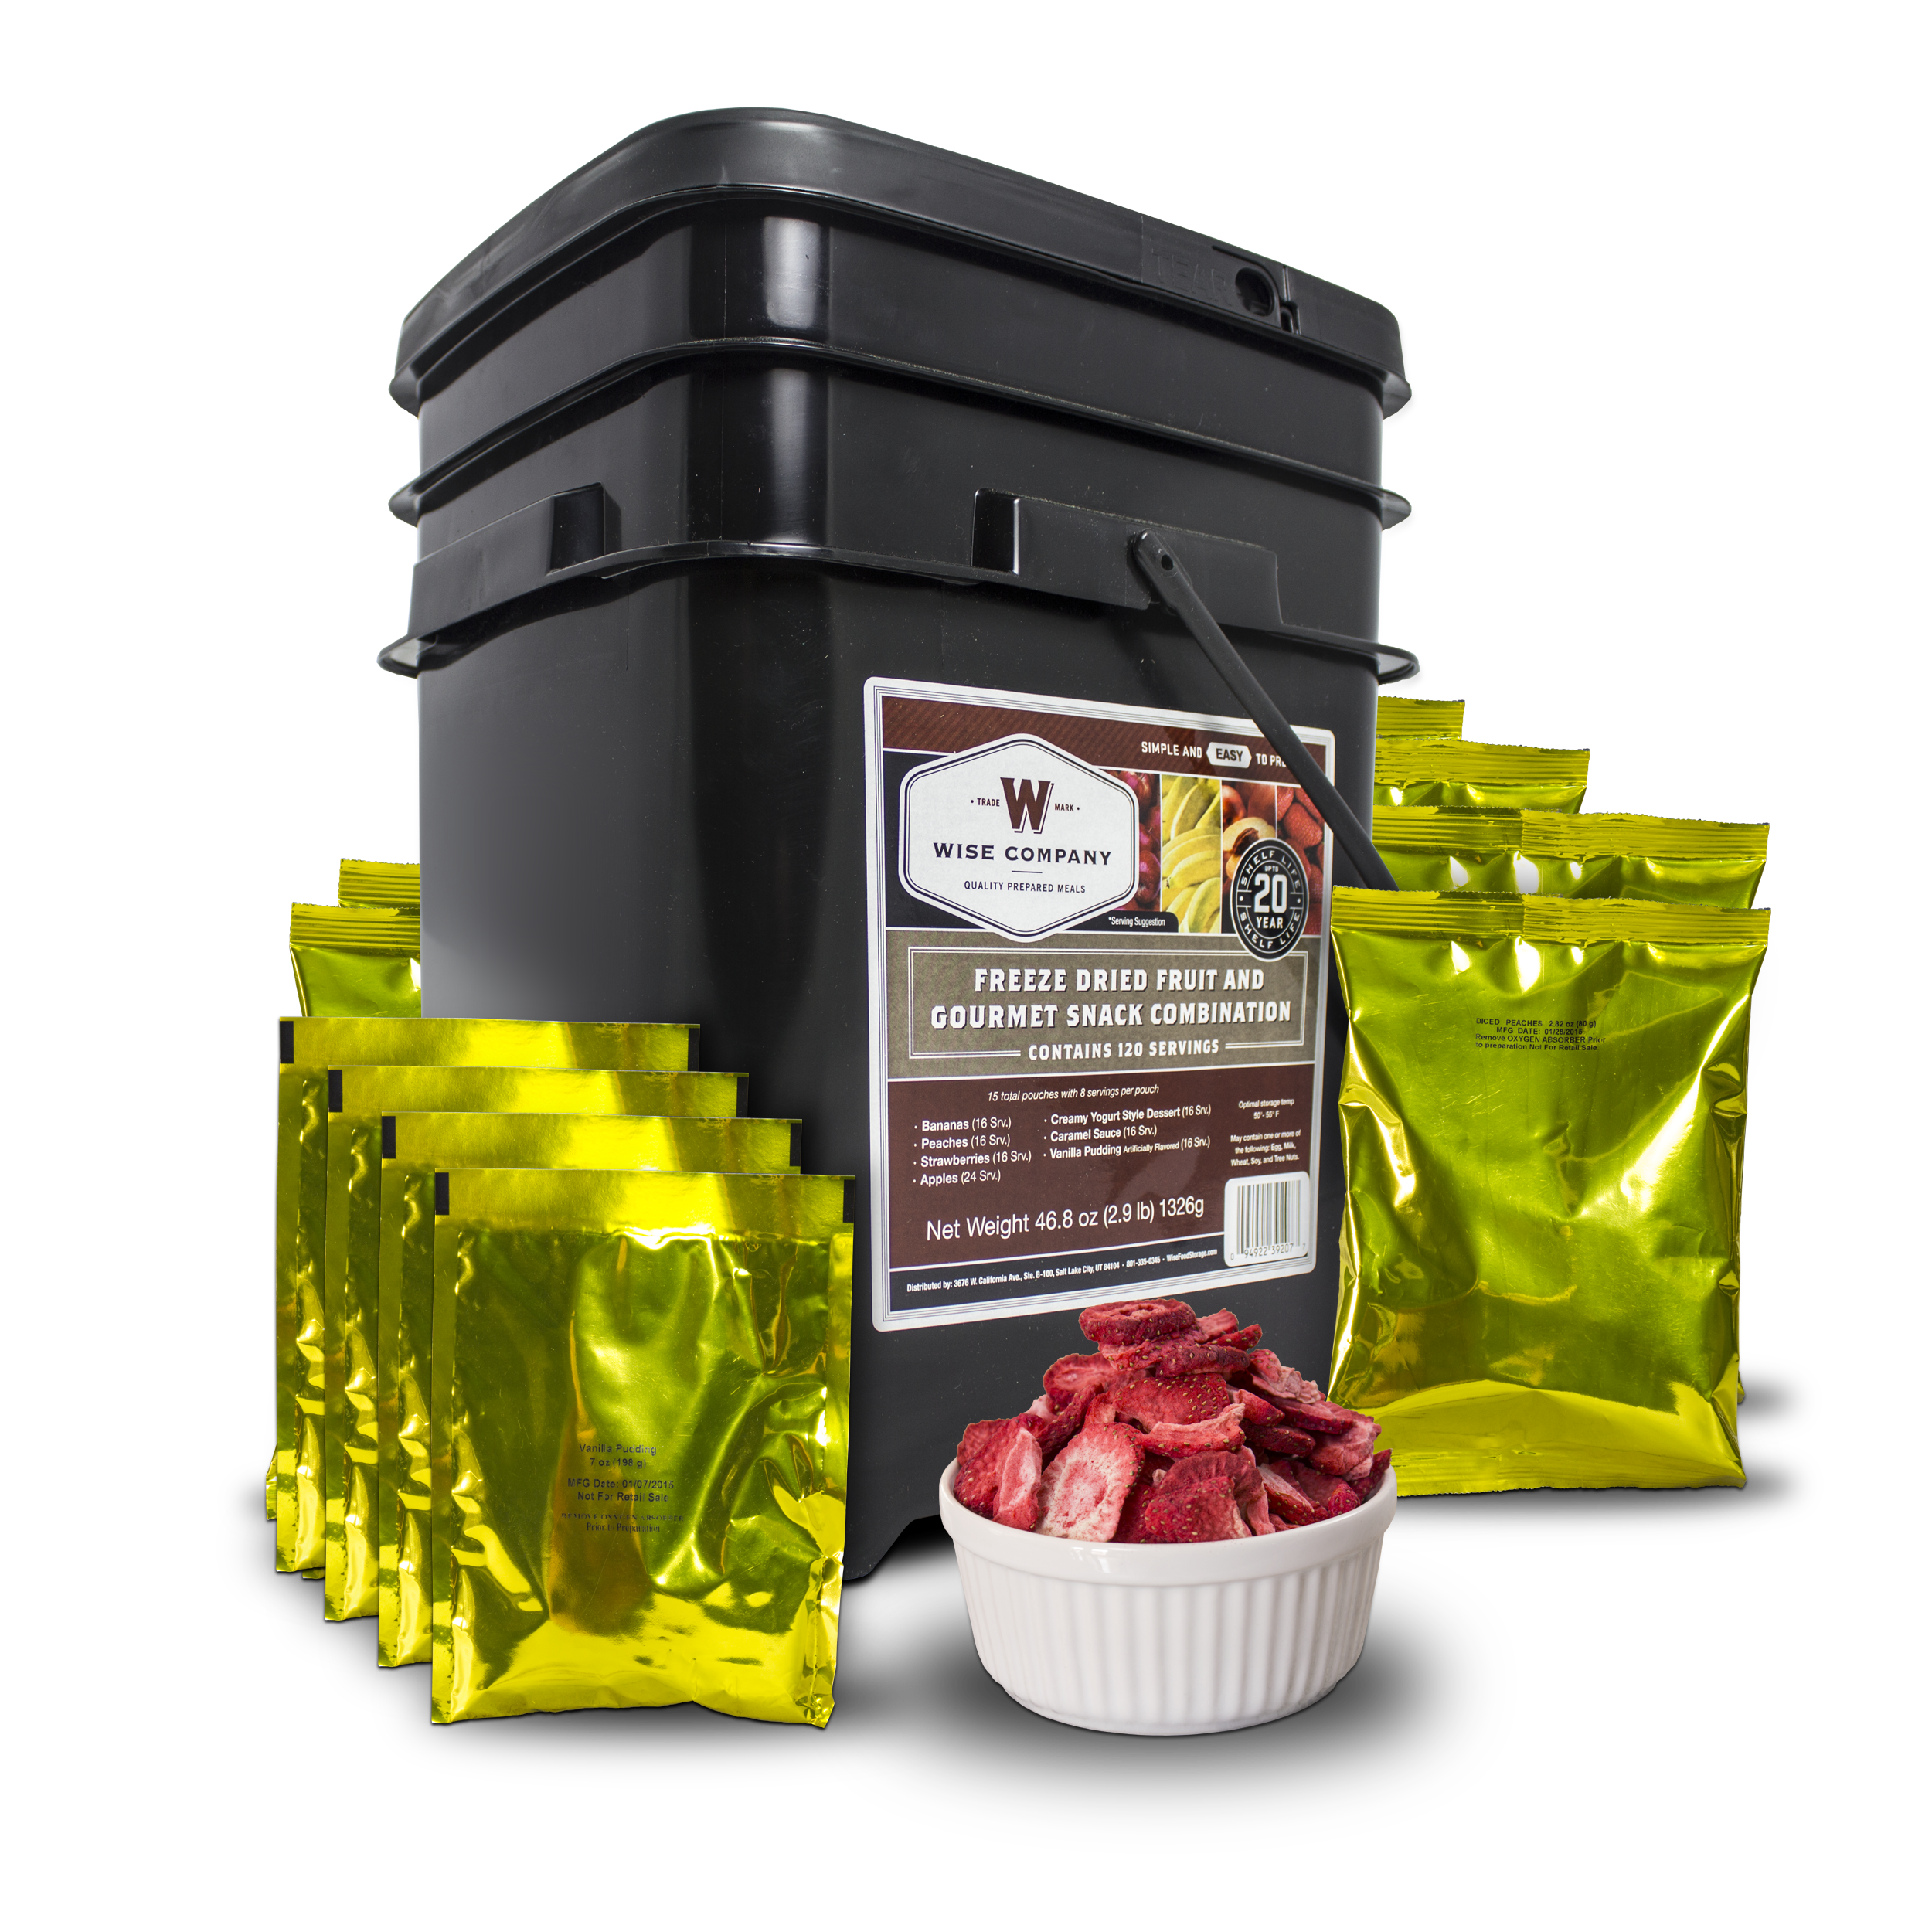 120 Serving Freeze Dried Fruit and Gourmet Snack Combination-(40-50120) 120 Serve Fruit Bucket Lifestyle.png